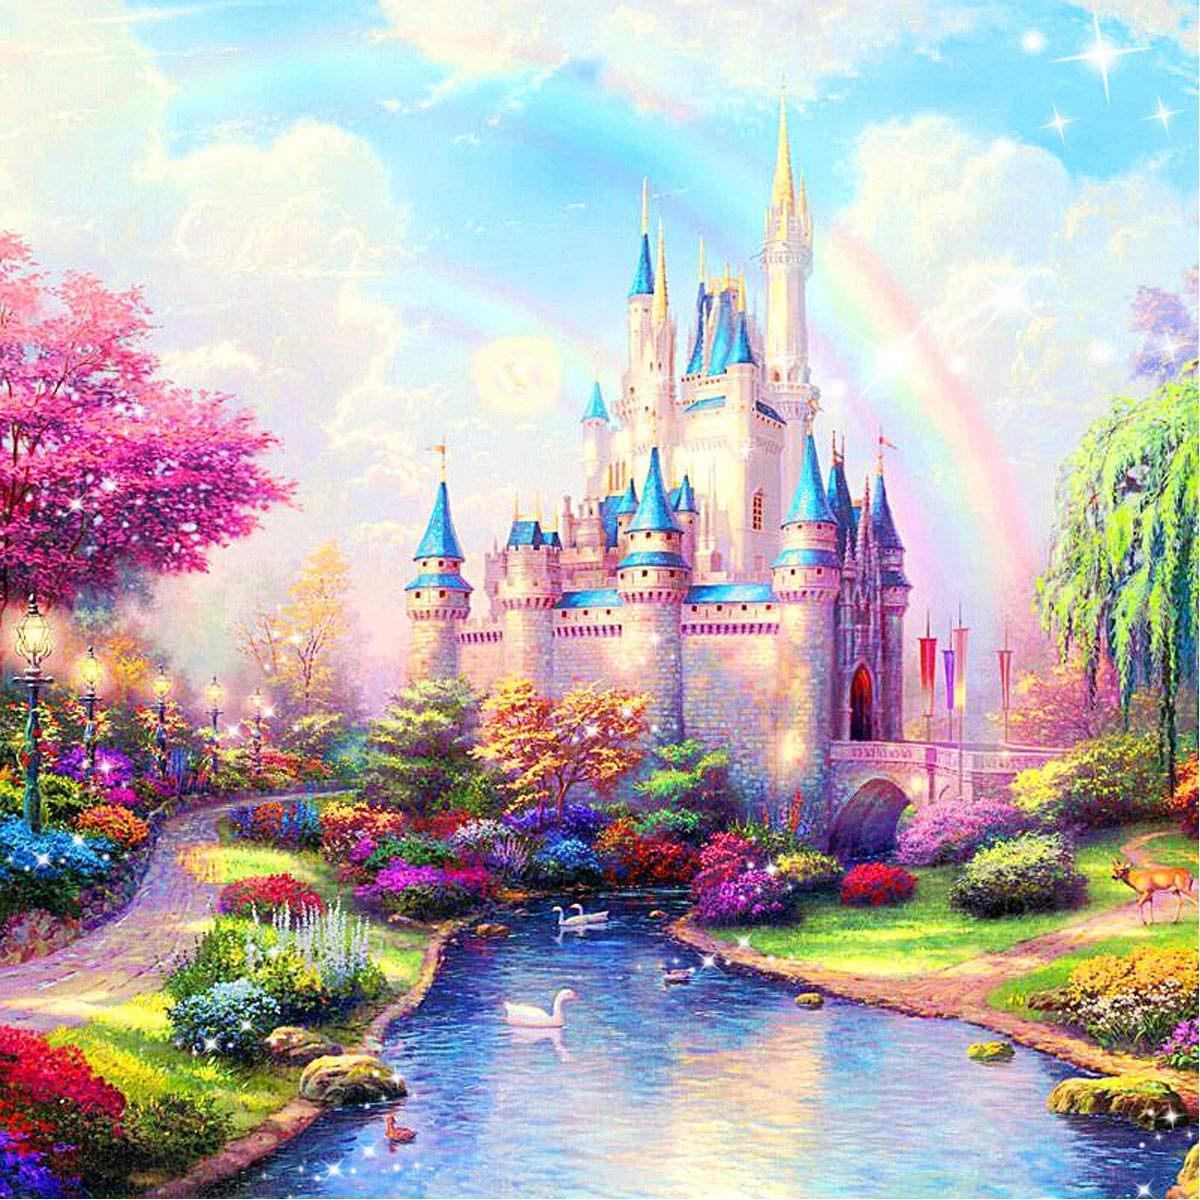 Full Drill Large Diamond Painting Kits for Adults 22x18'', 5D DIY Paint-by-Number Kits with Diamonds for Home Wall Decors Rainbow Castle 55x45 cm by ANMUXI